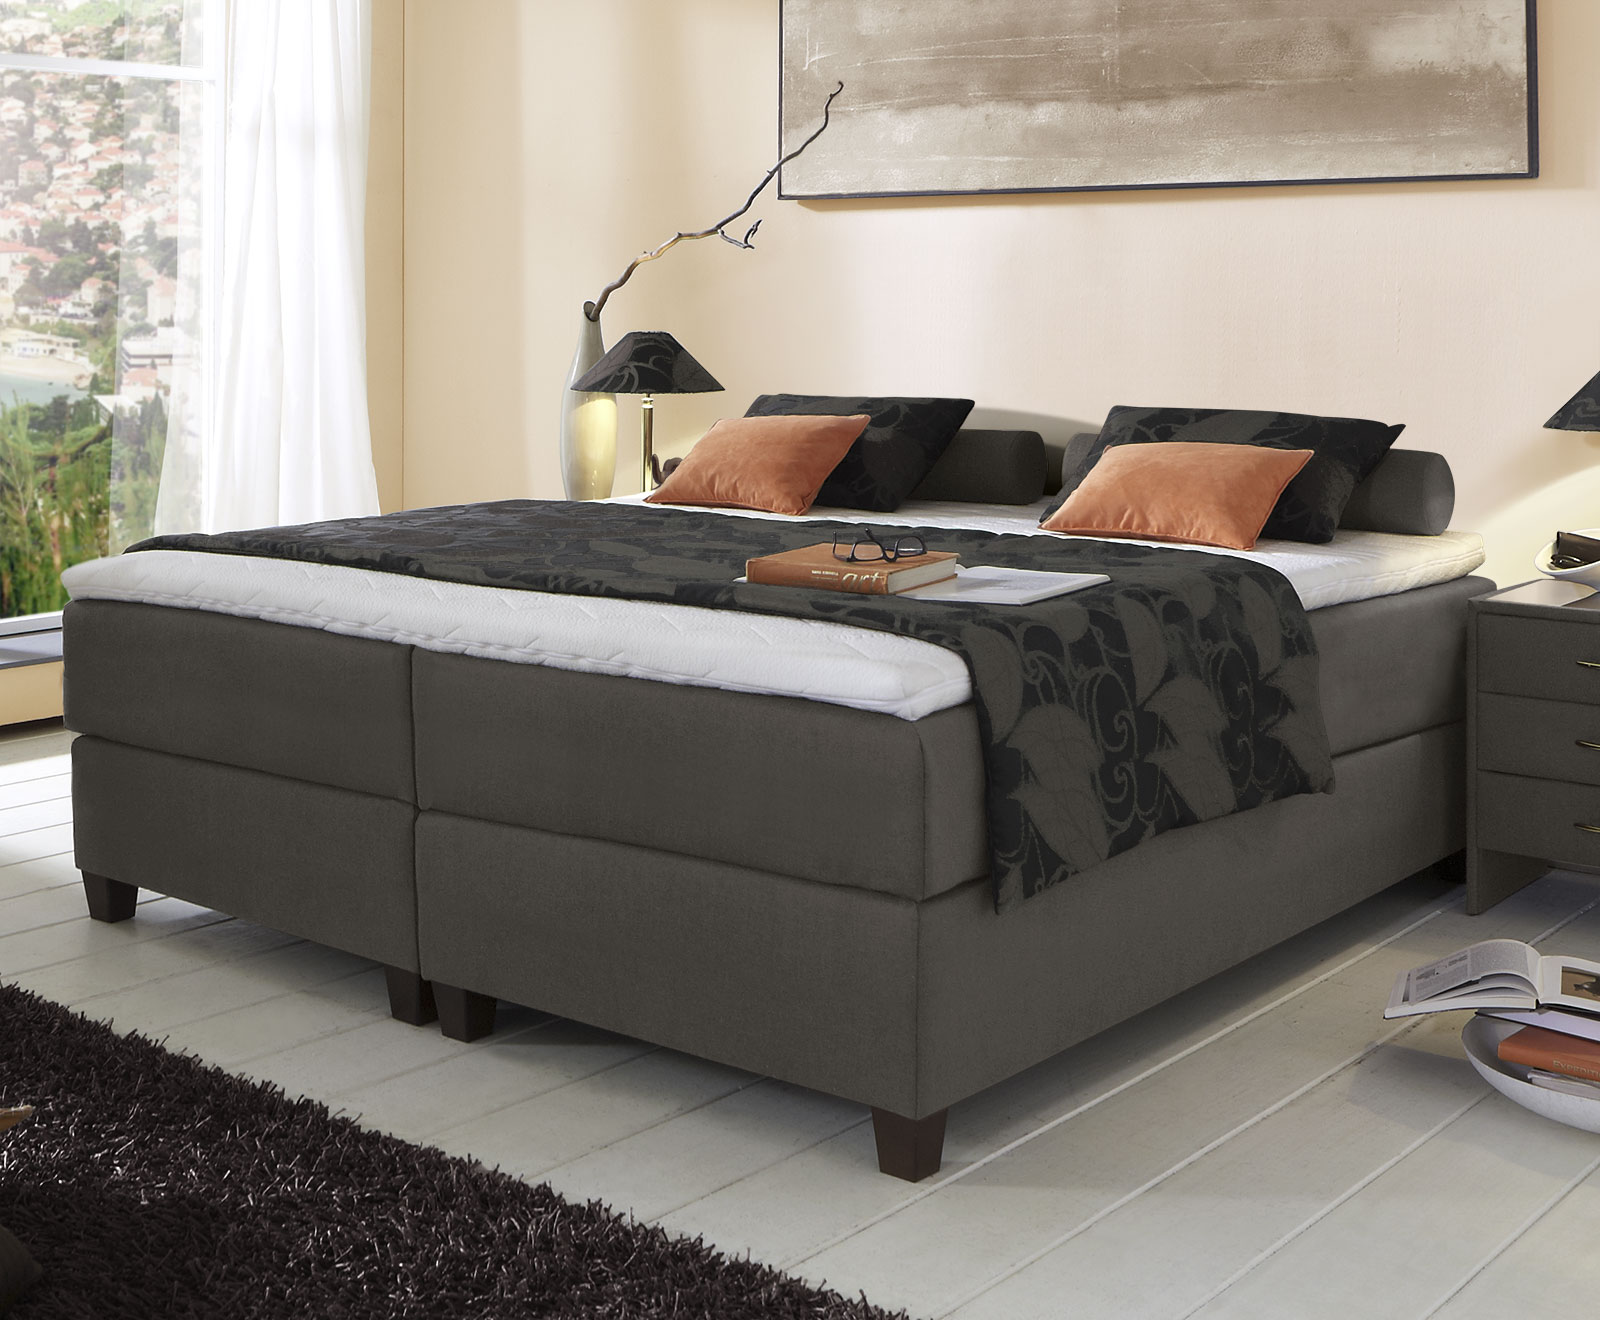 boxspringbett niedriges kopfteil boxspringbett mit niedrigem kopfteil boxspring welt. Black Bedroom Furniture Sets. Home Design Ideas